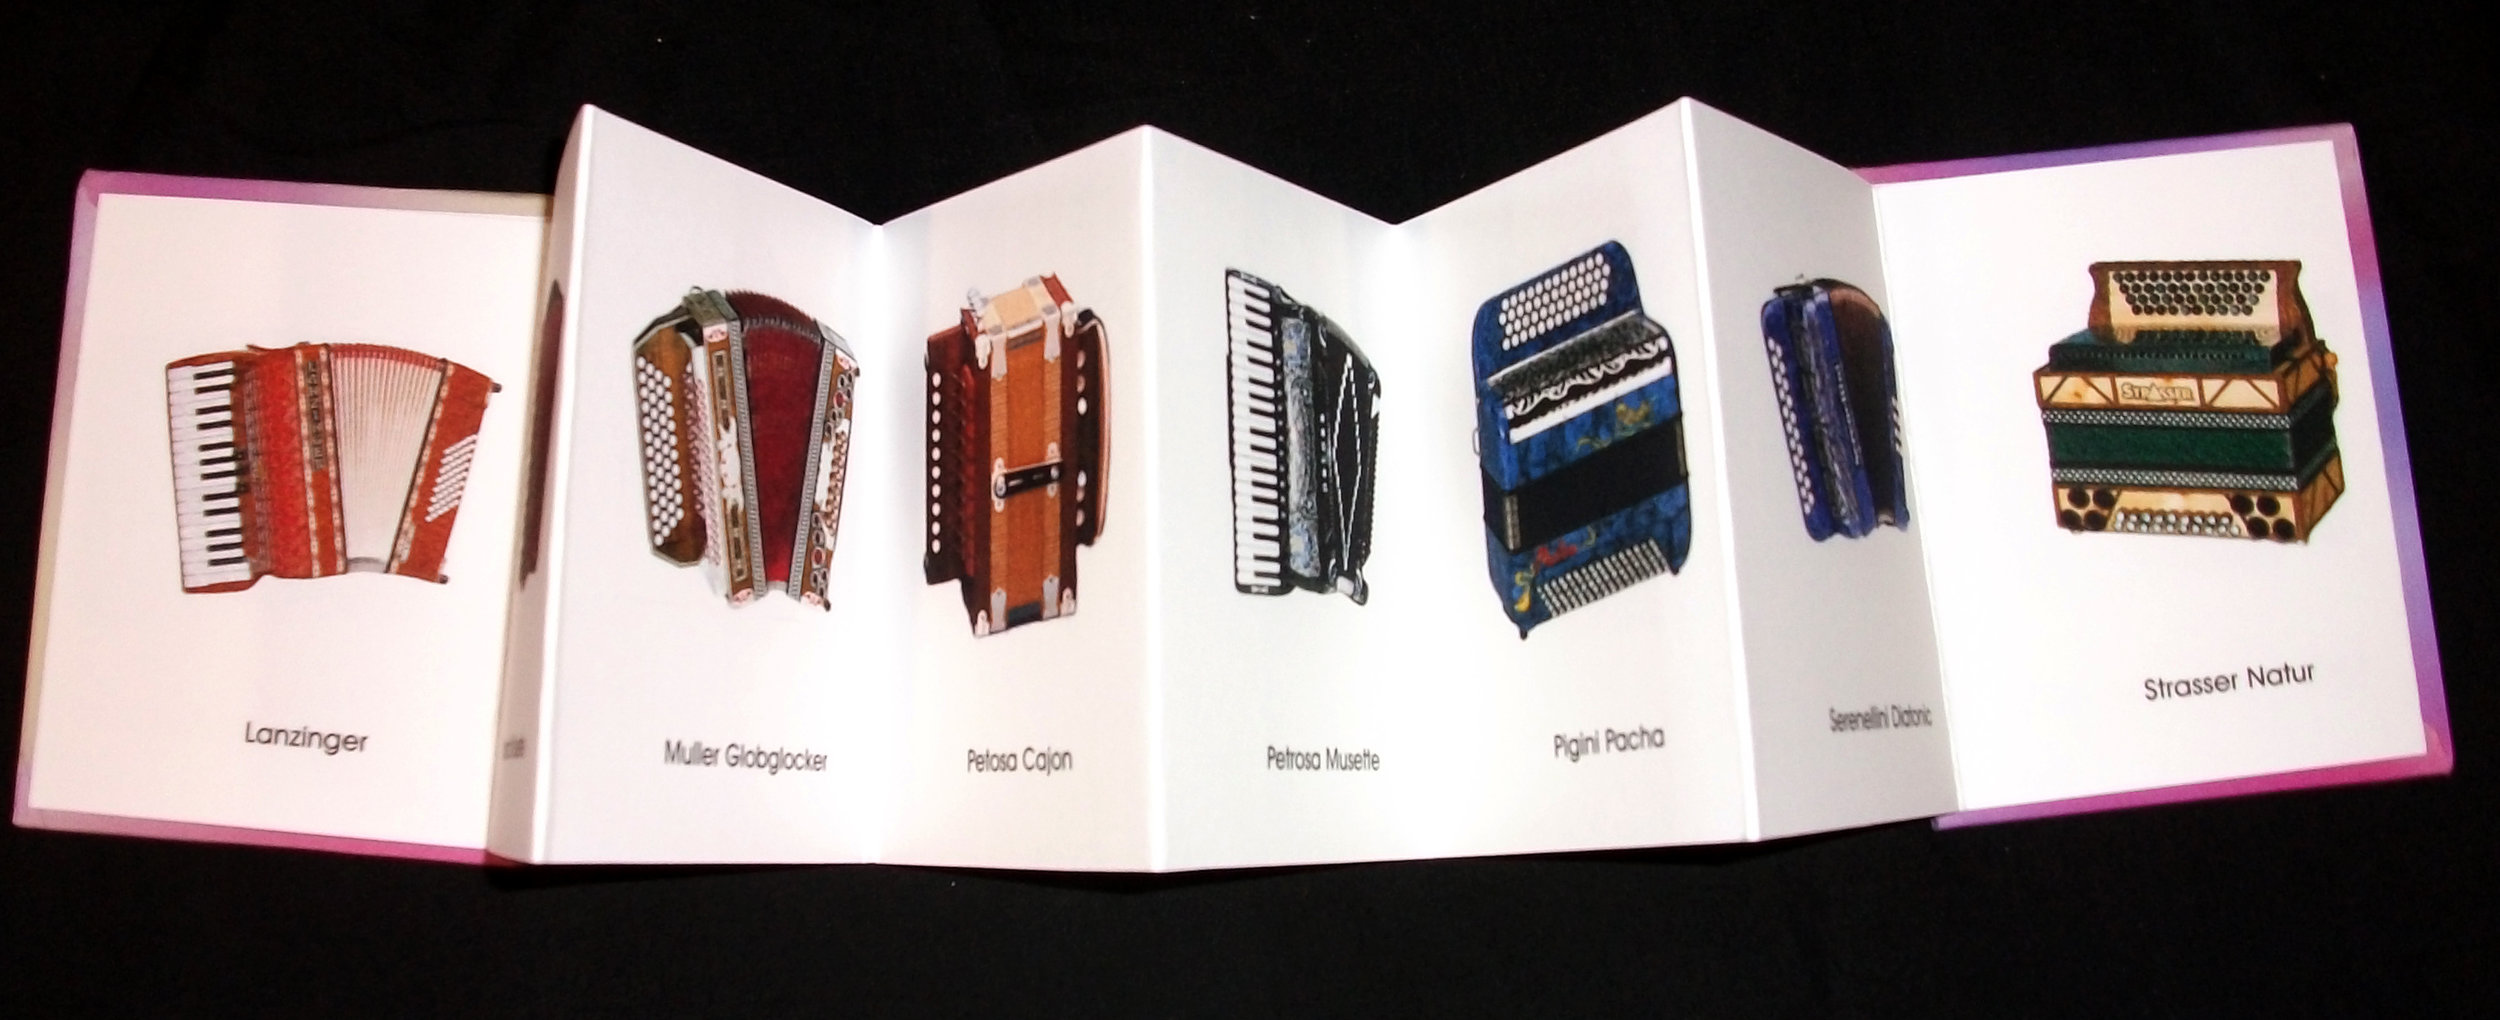 Rich Troncone,  Accordion Book of Accordions,  inkjet print on watercolor paper, board, 2008, Los Angeles, CA